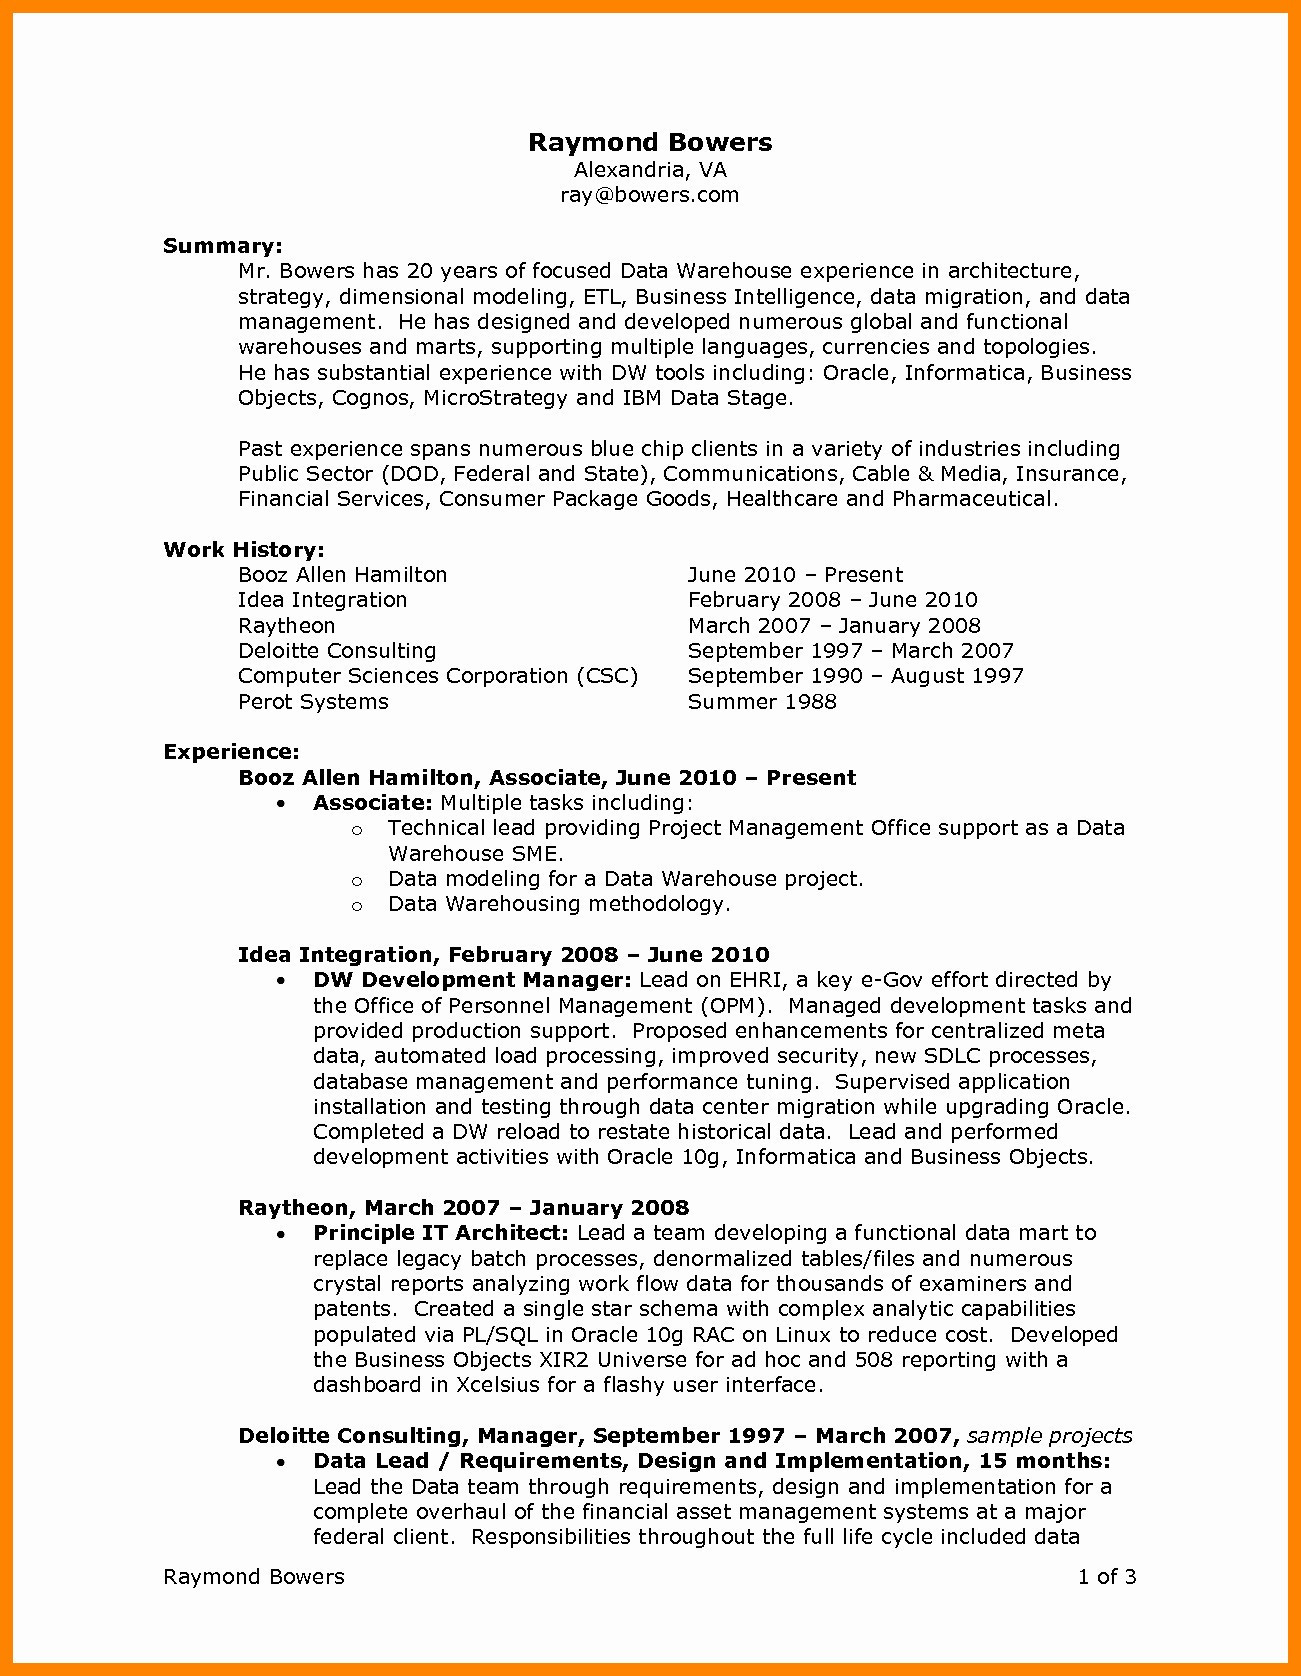 Resume Template Free - Resume for Internal Promotion Template Free Downloads Beautiful